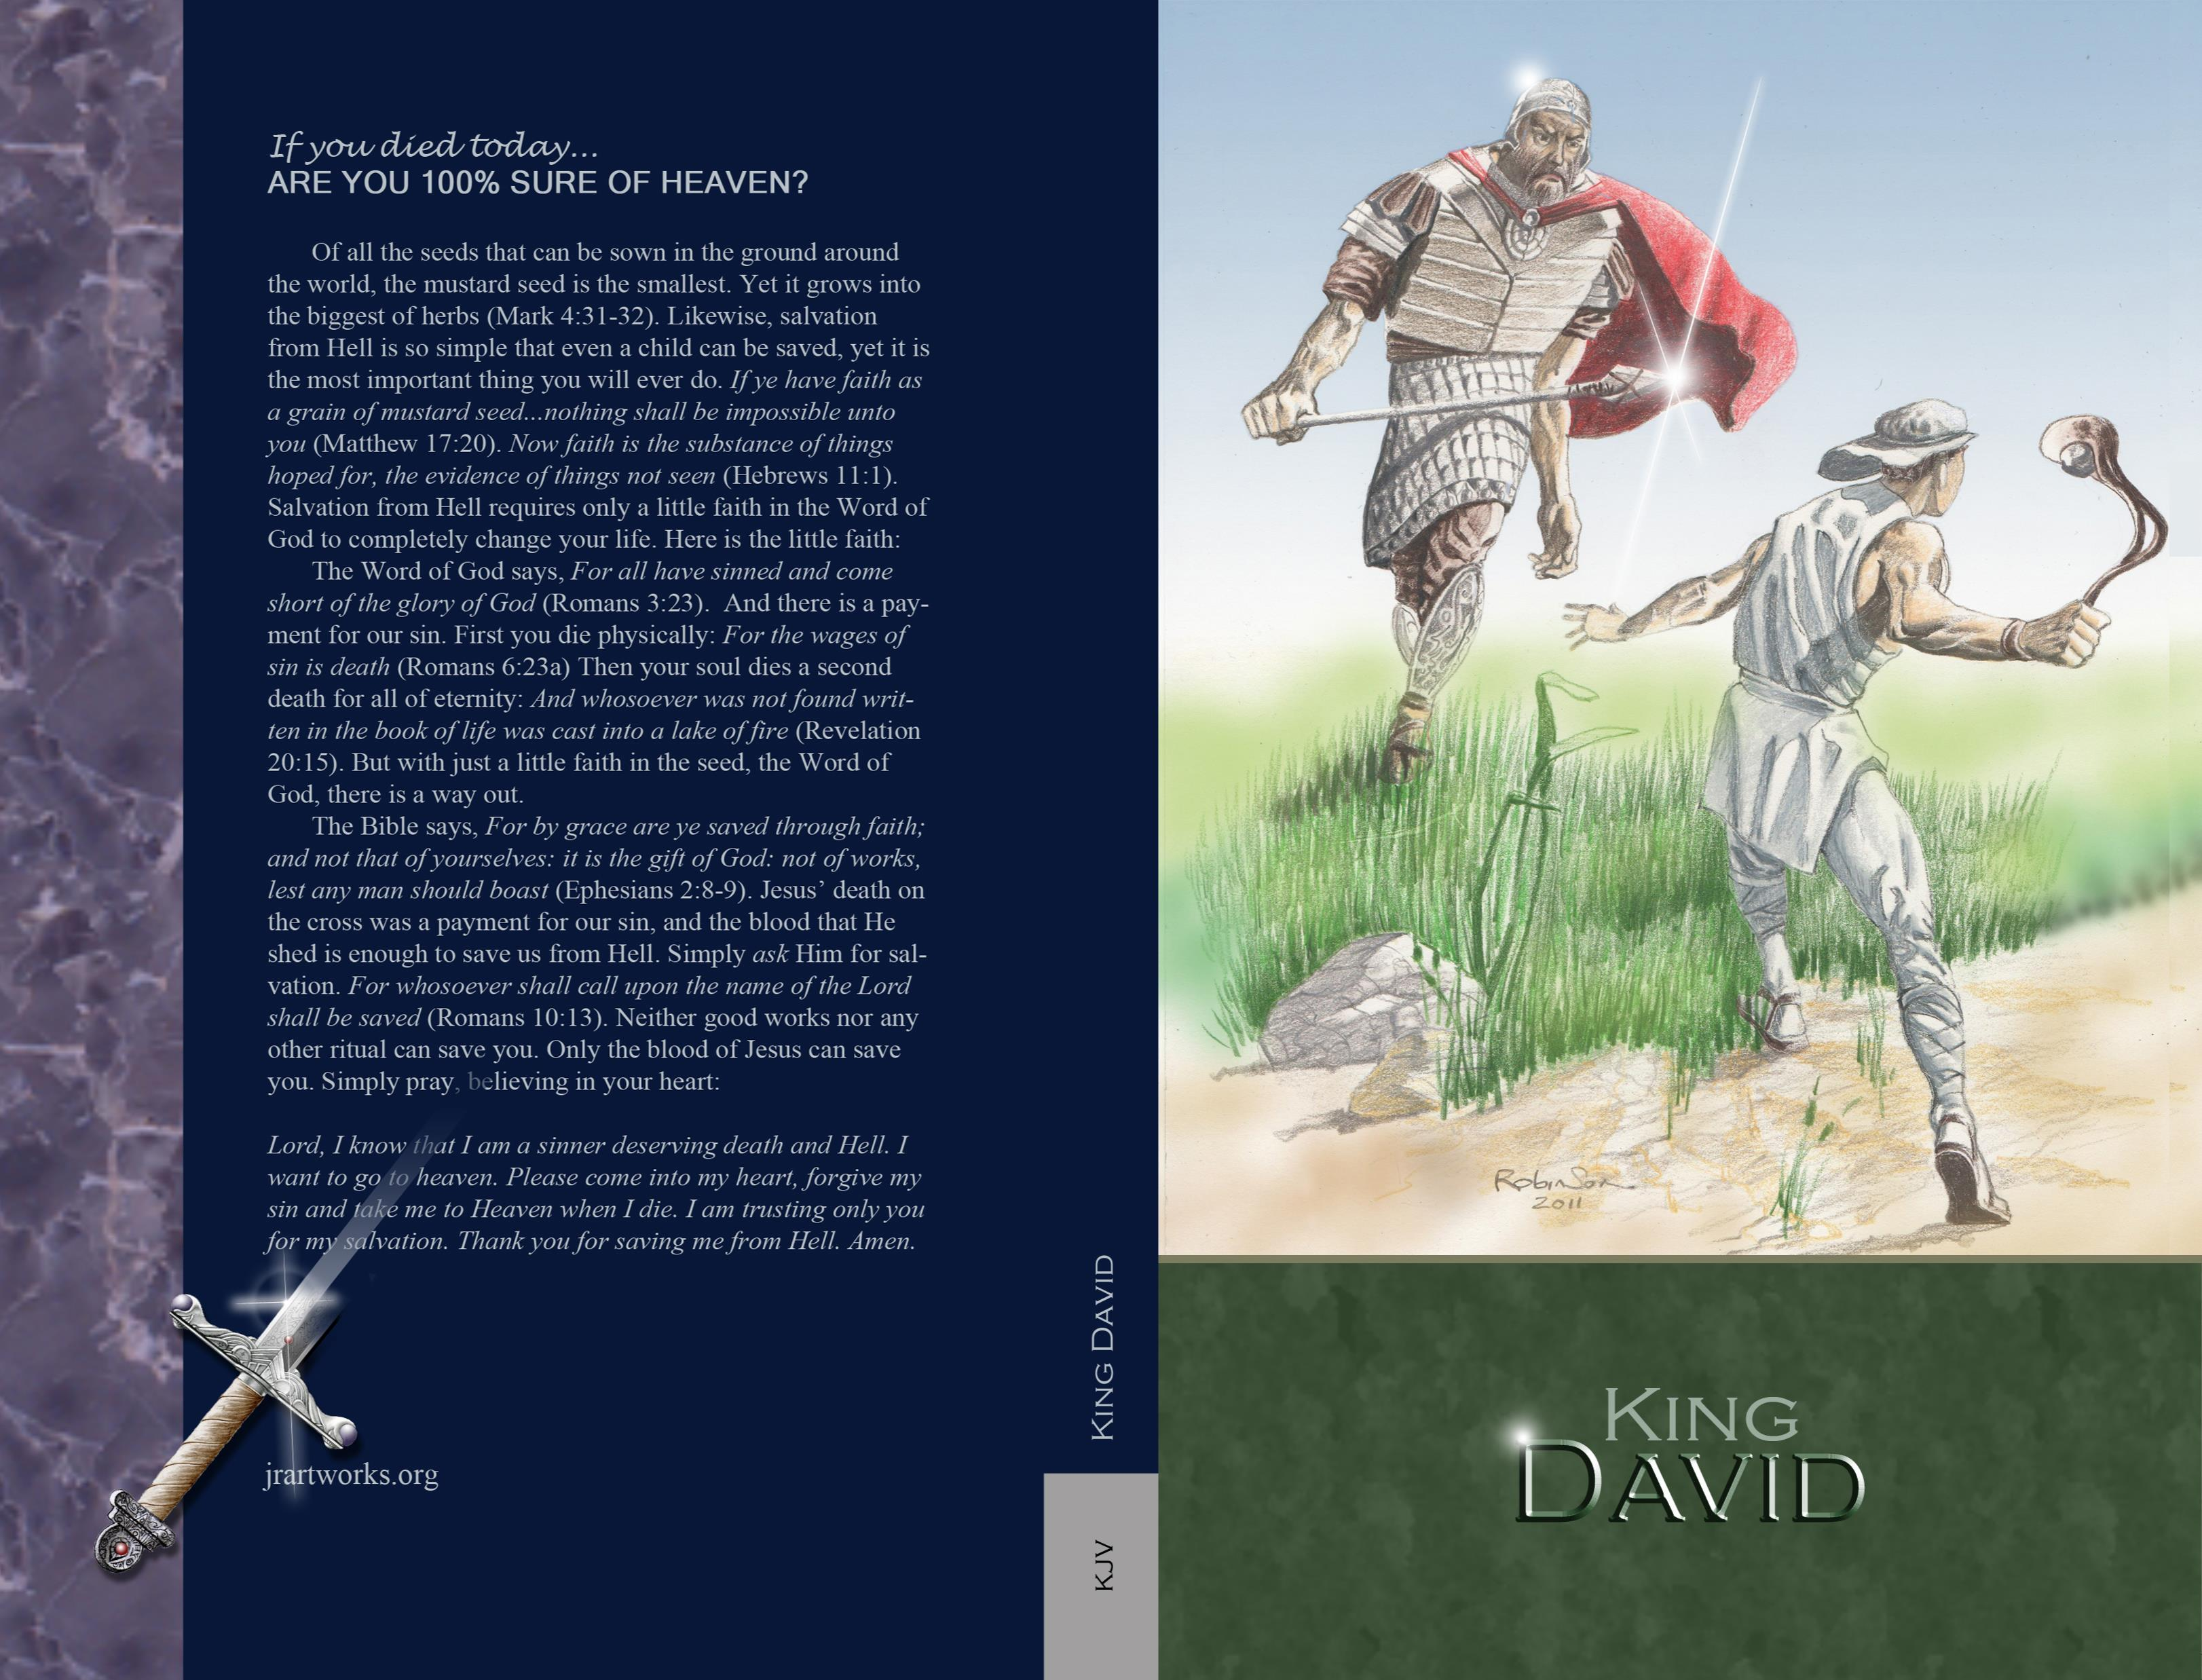 King David - KJV cover image